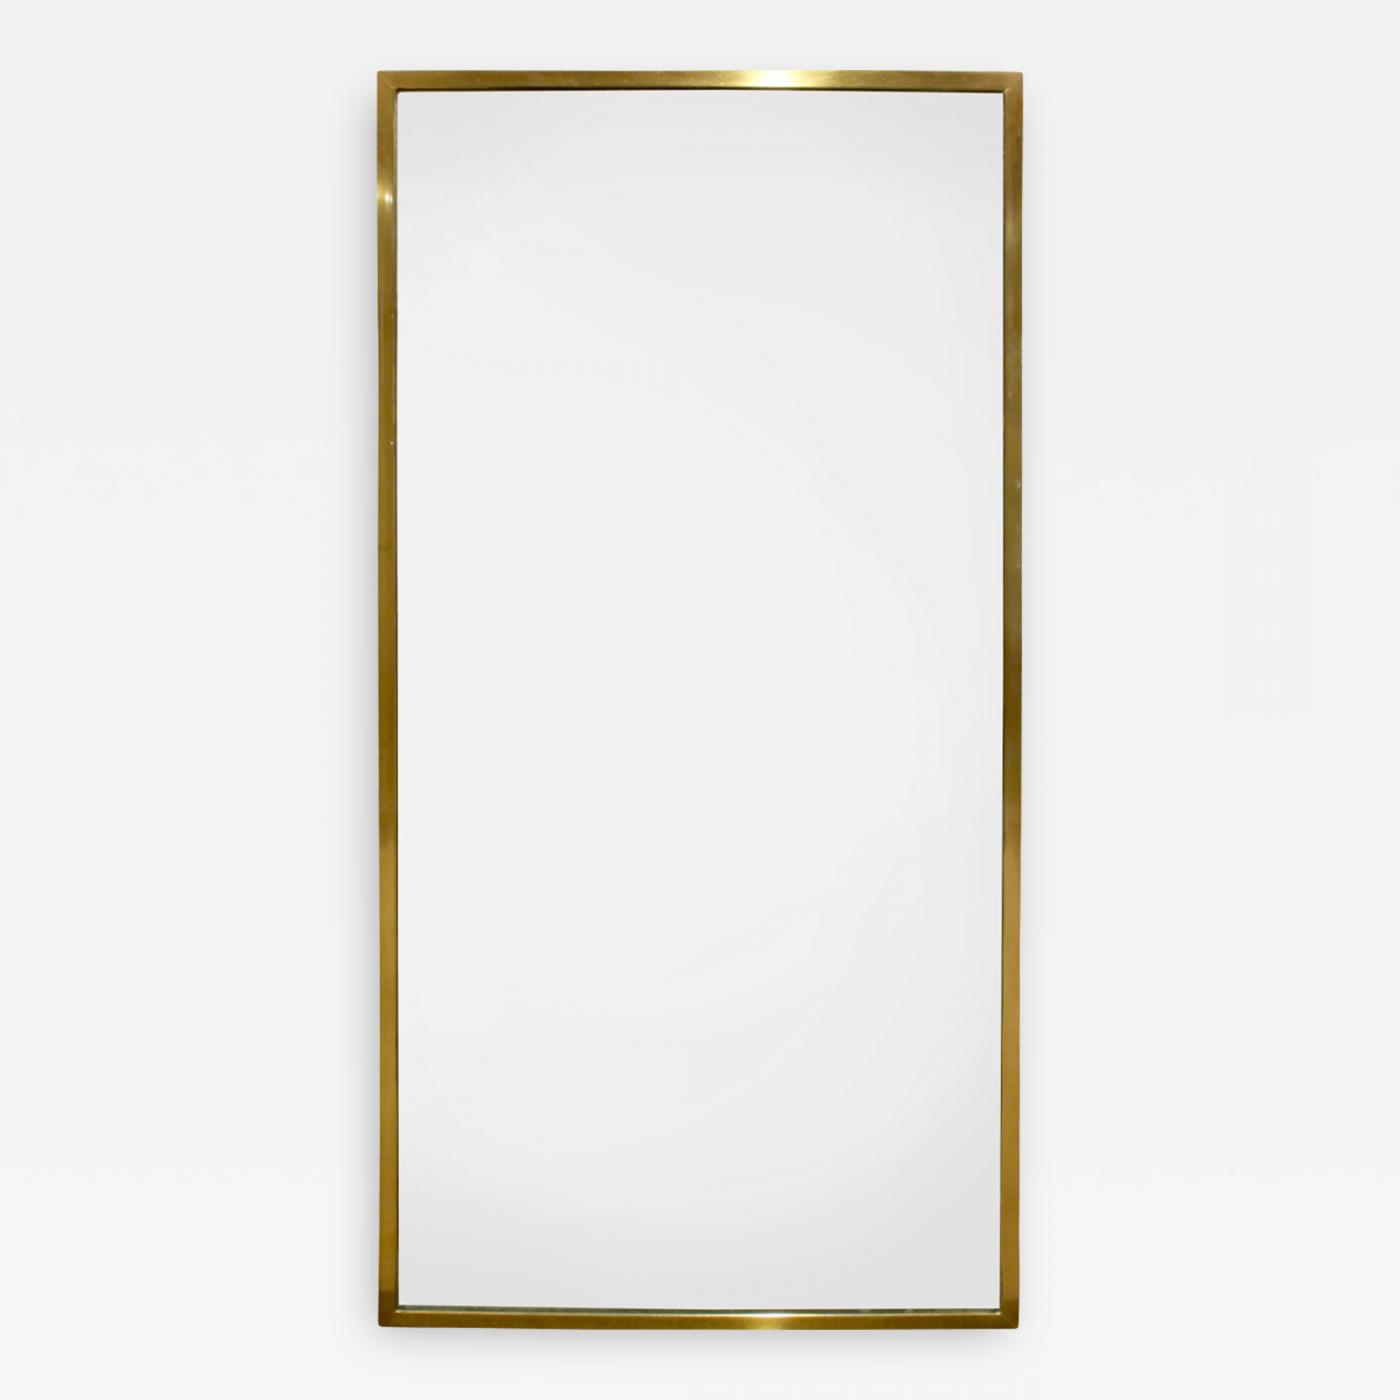 Popular Harvey Probber Large Rectangular Mirror With Brass Frame 1950s Inside Long Rectangular Wall Mirrors (View 15 of 20)